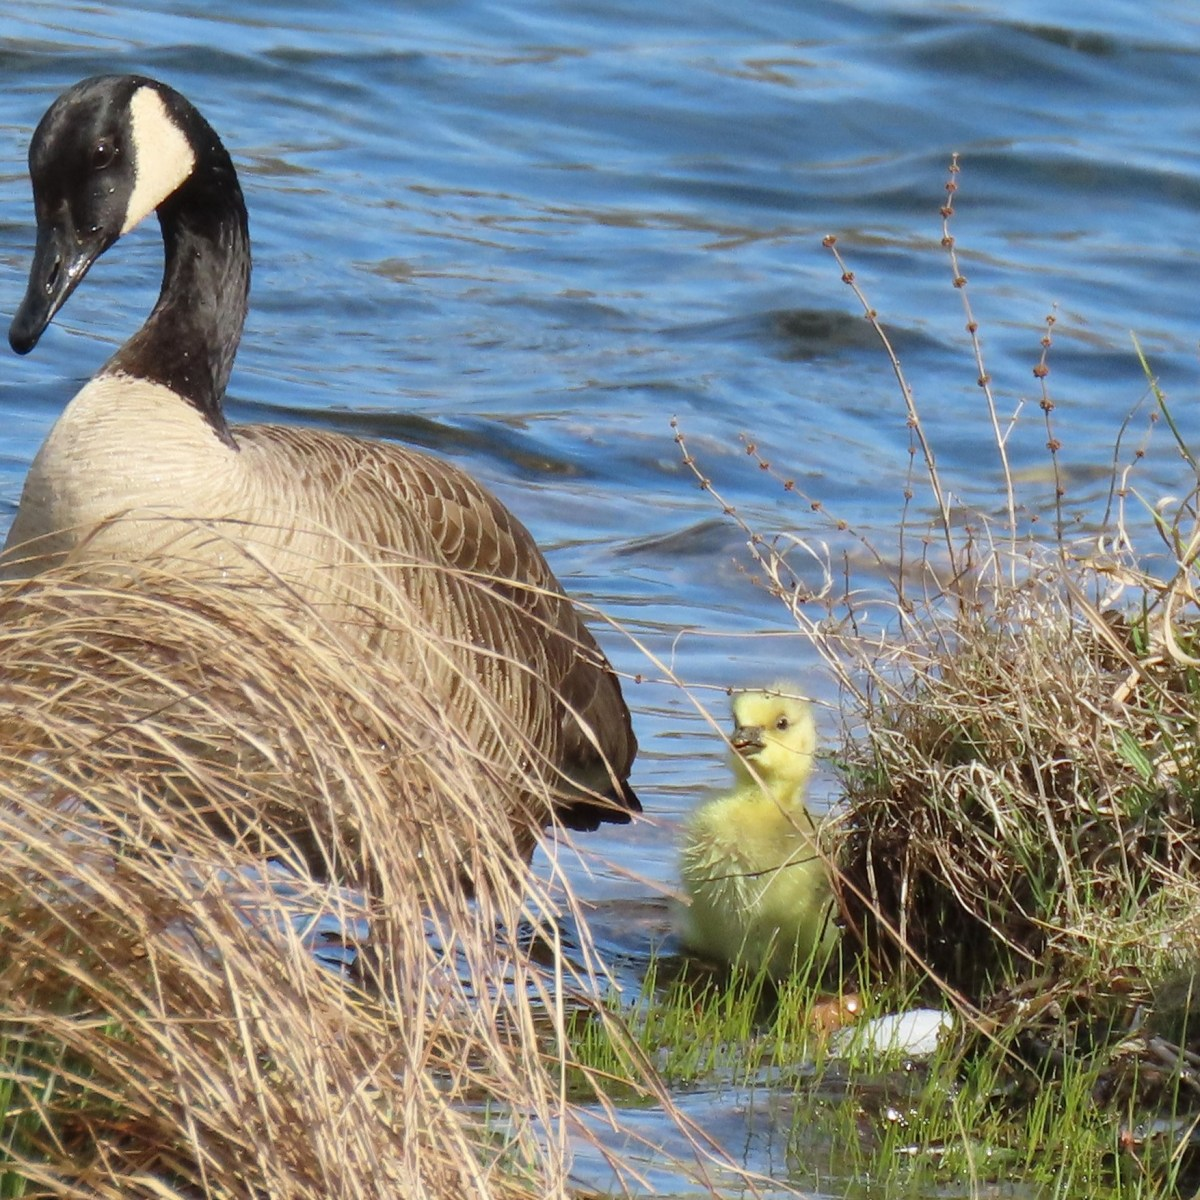 A goose and its gosling stand in the water near tall grasses